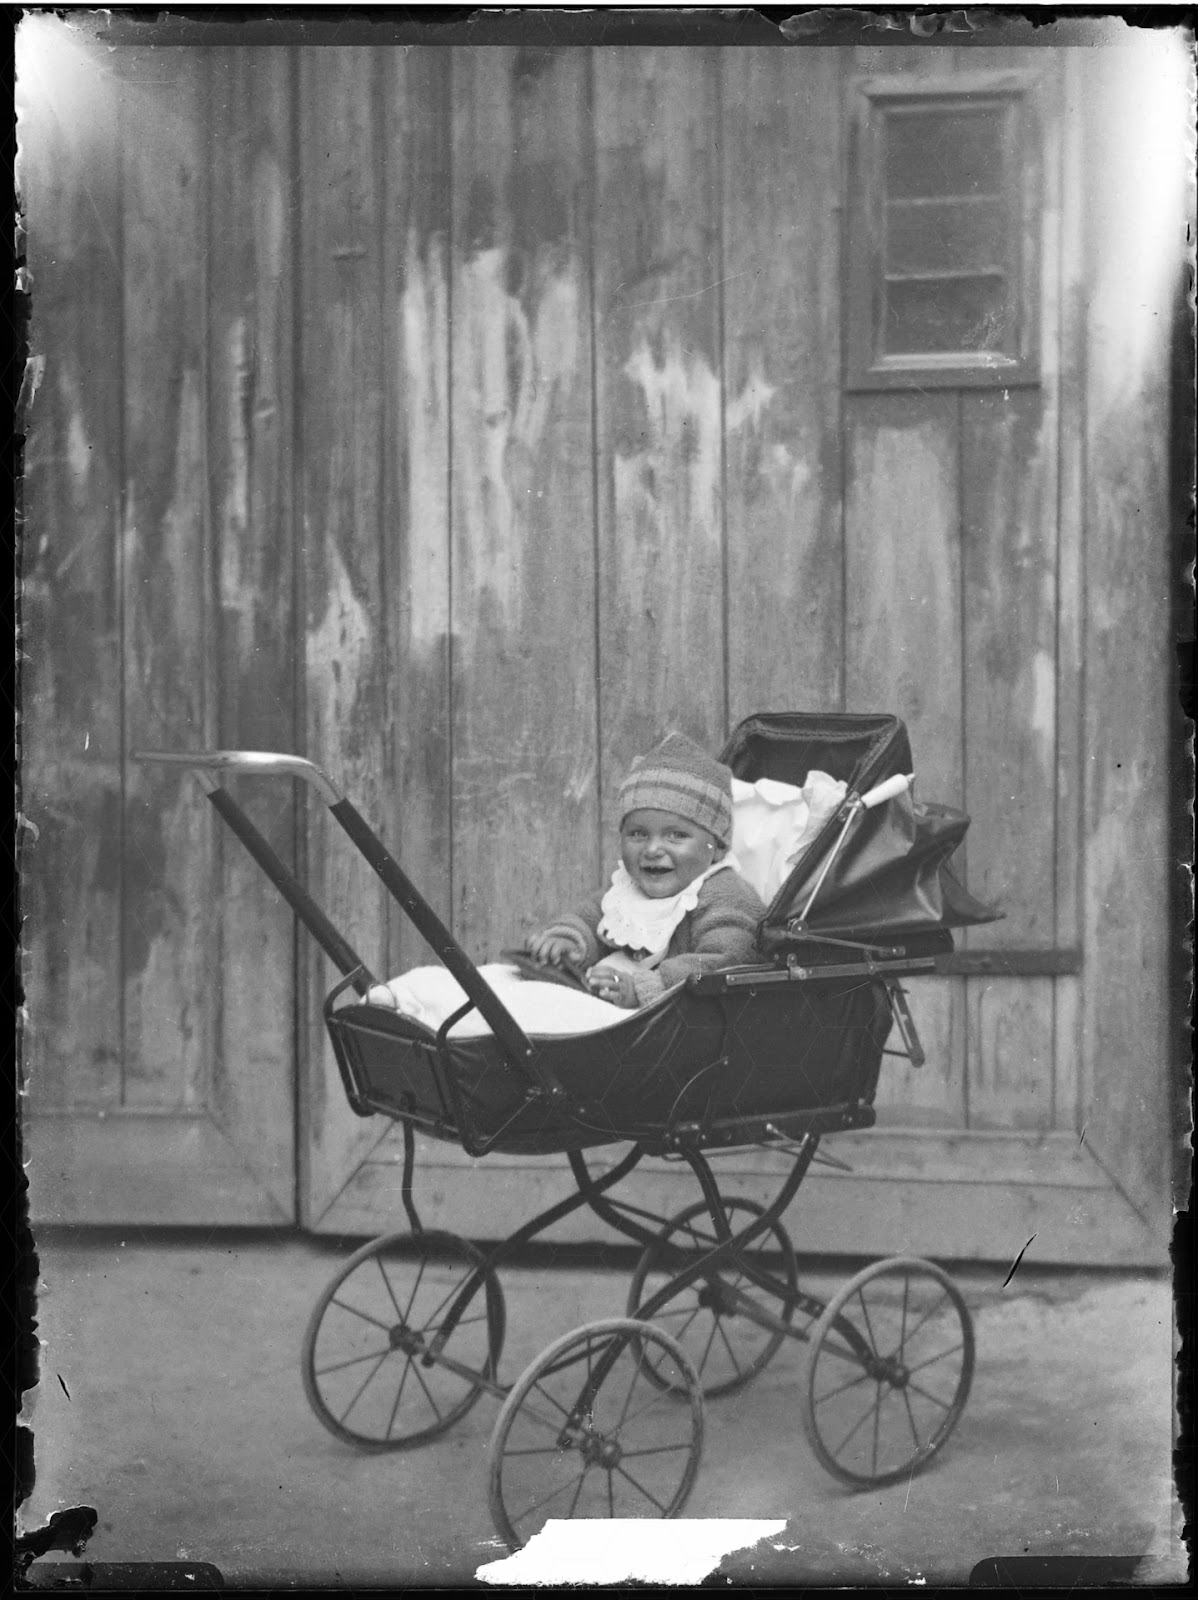 Kind in Kinderwagen - 1920-1930